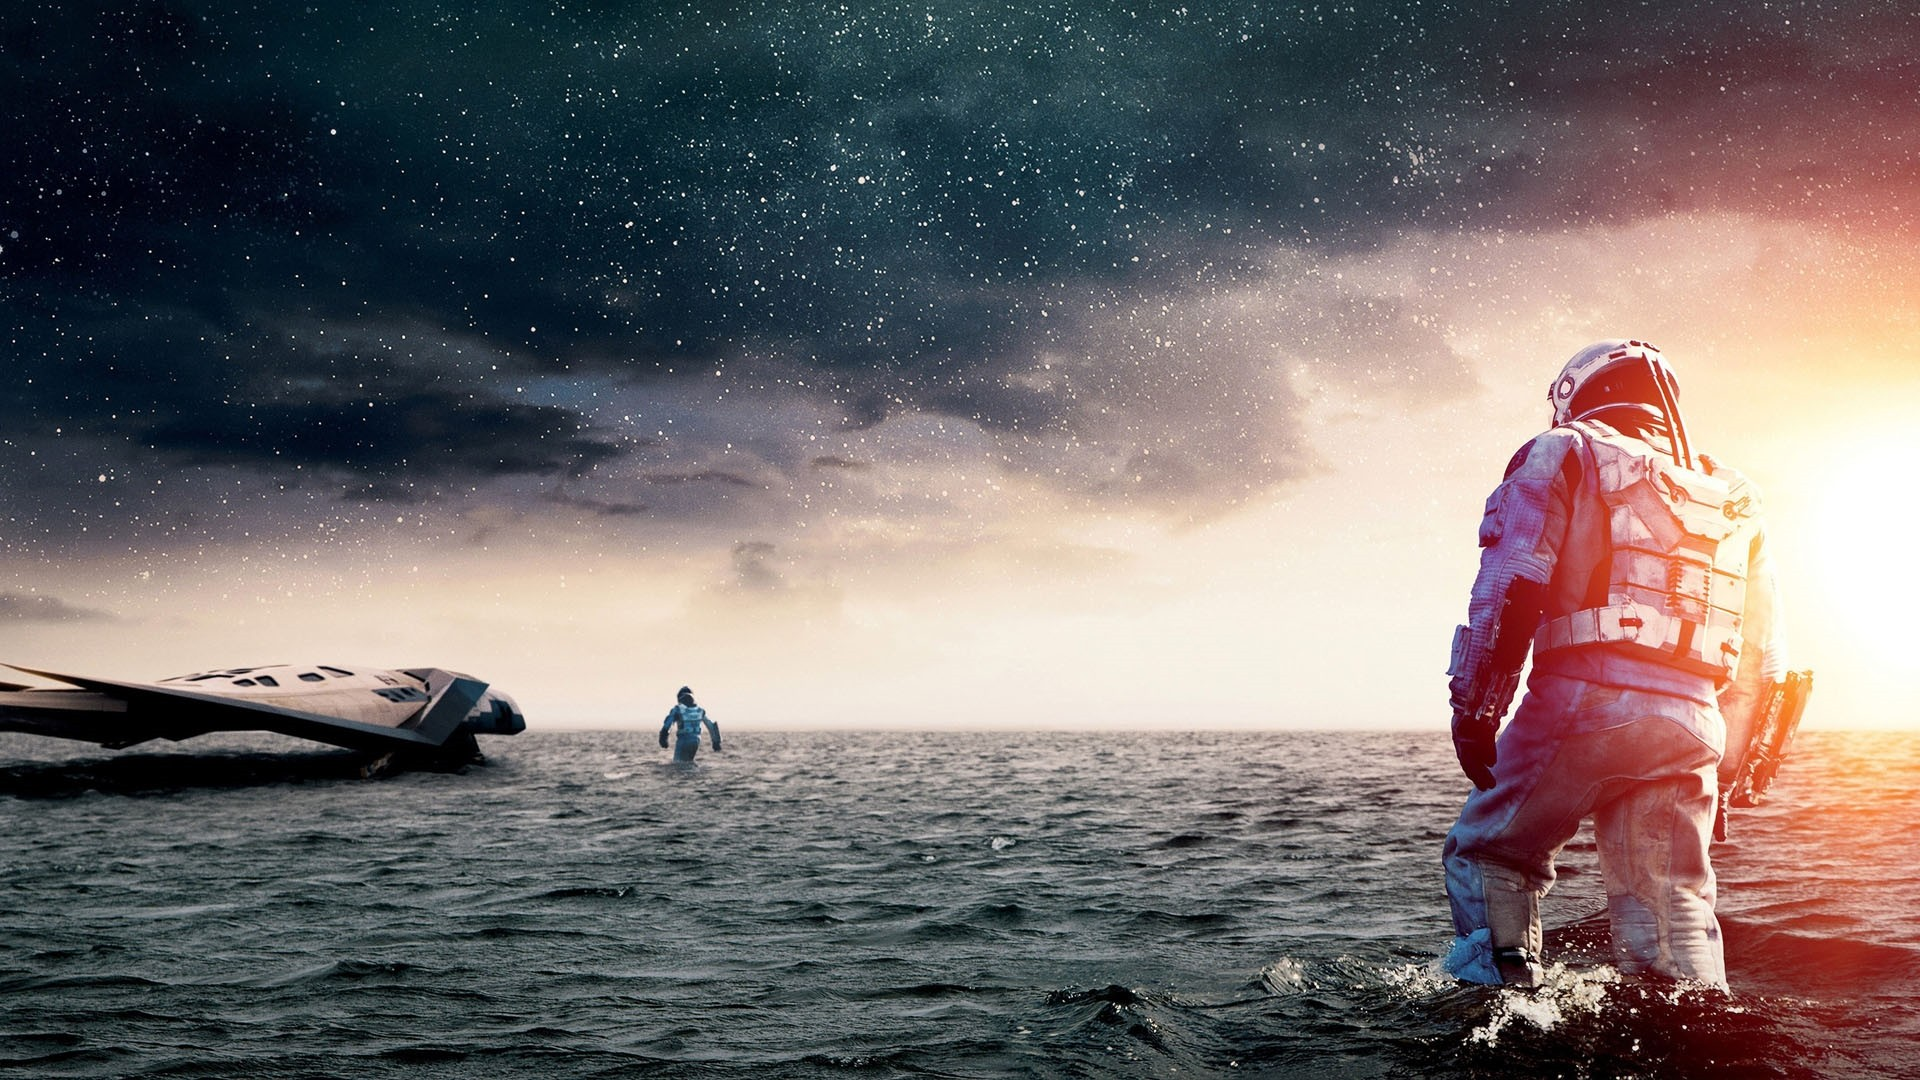 Interstellar Desktop wallpaper